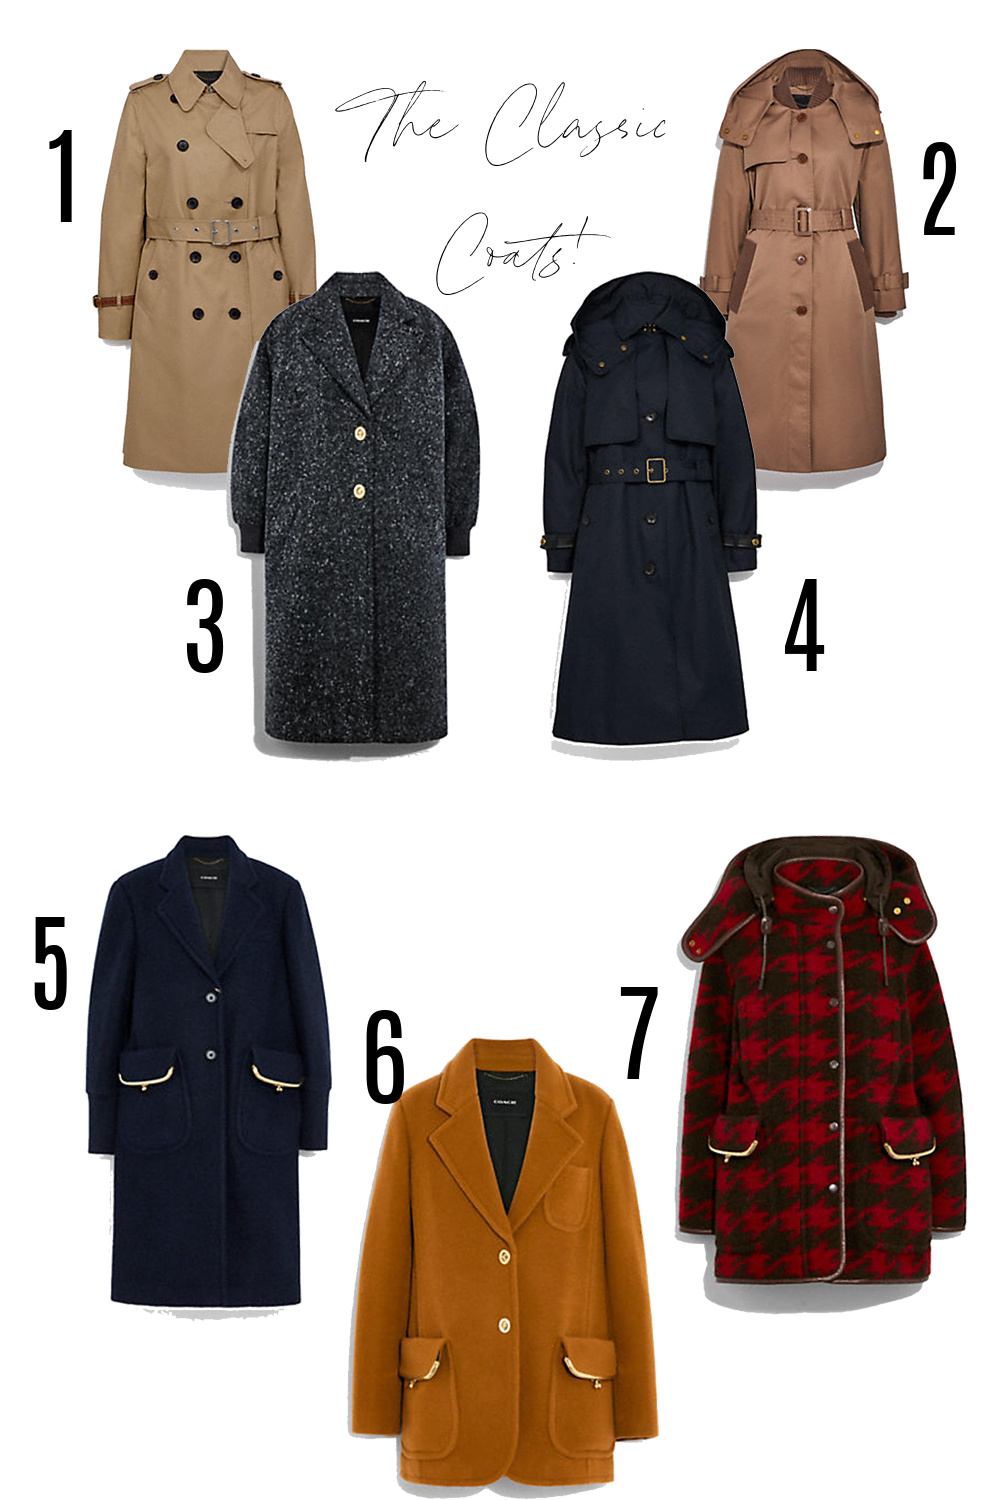 COACH Fall 2021 Collection I Classic Trench and Overcoats #fashionstyle #ootdstyle